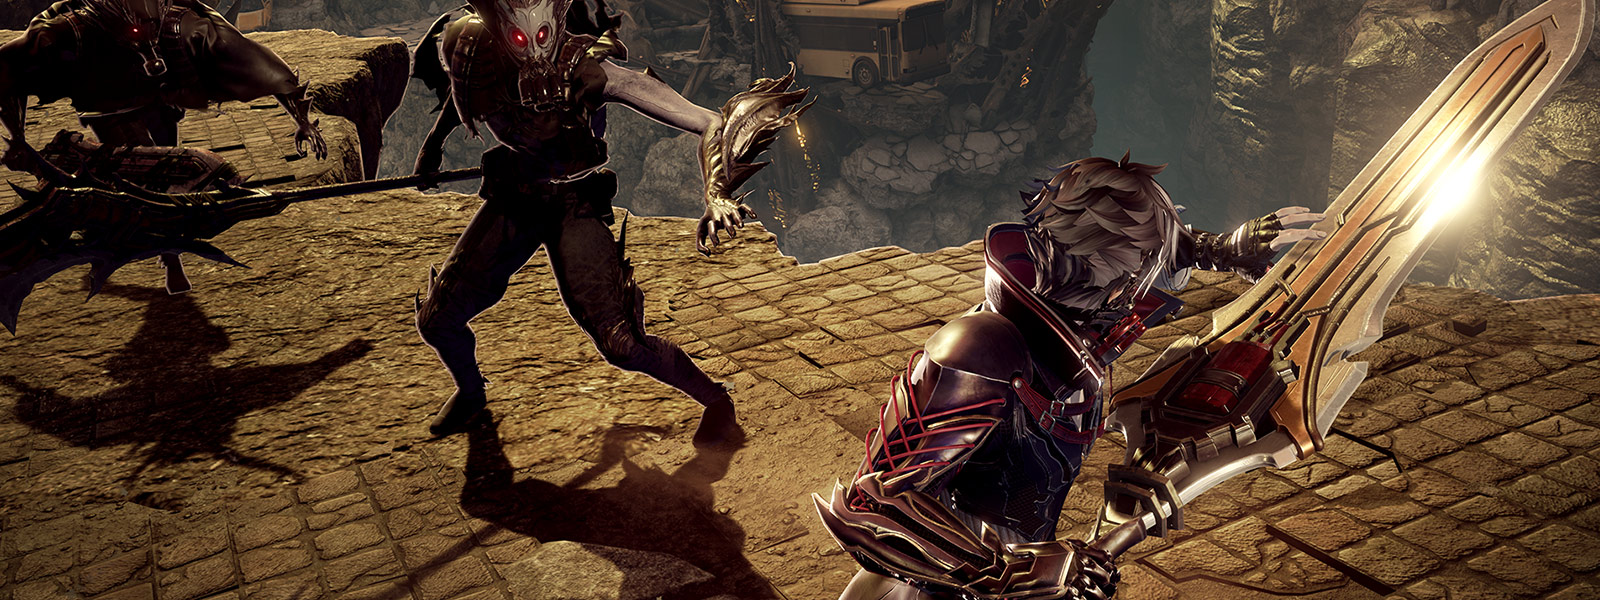 Code vein character prepares to attack the lost with sword